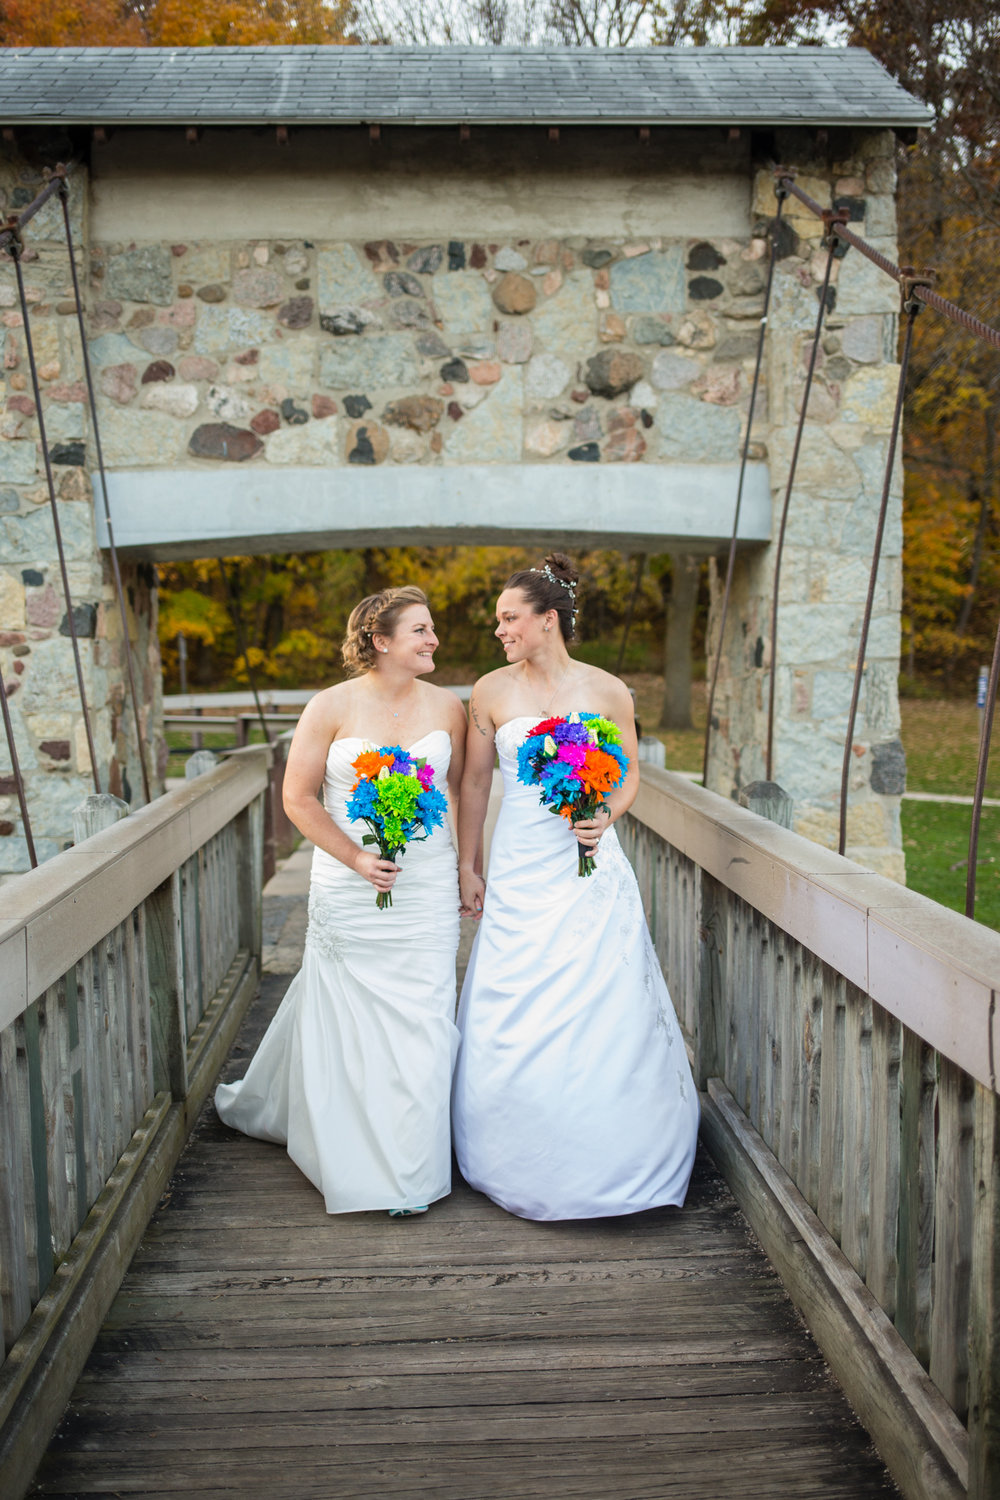 Pamperin Park Wedding Green Bay Wisconsin Same Sex Wedding - Whit Meza Photography